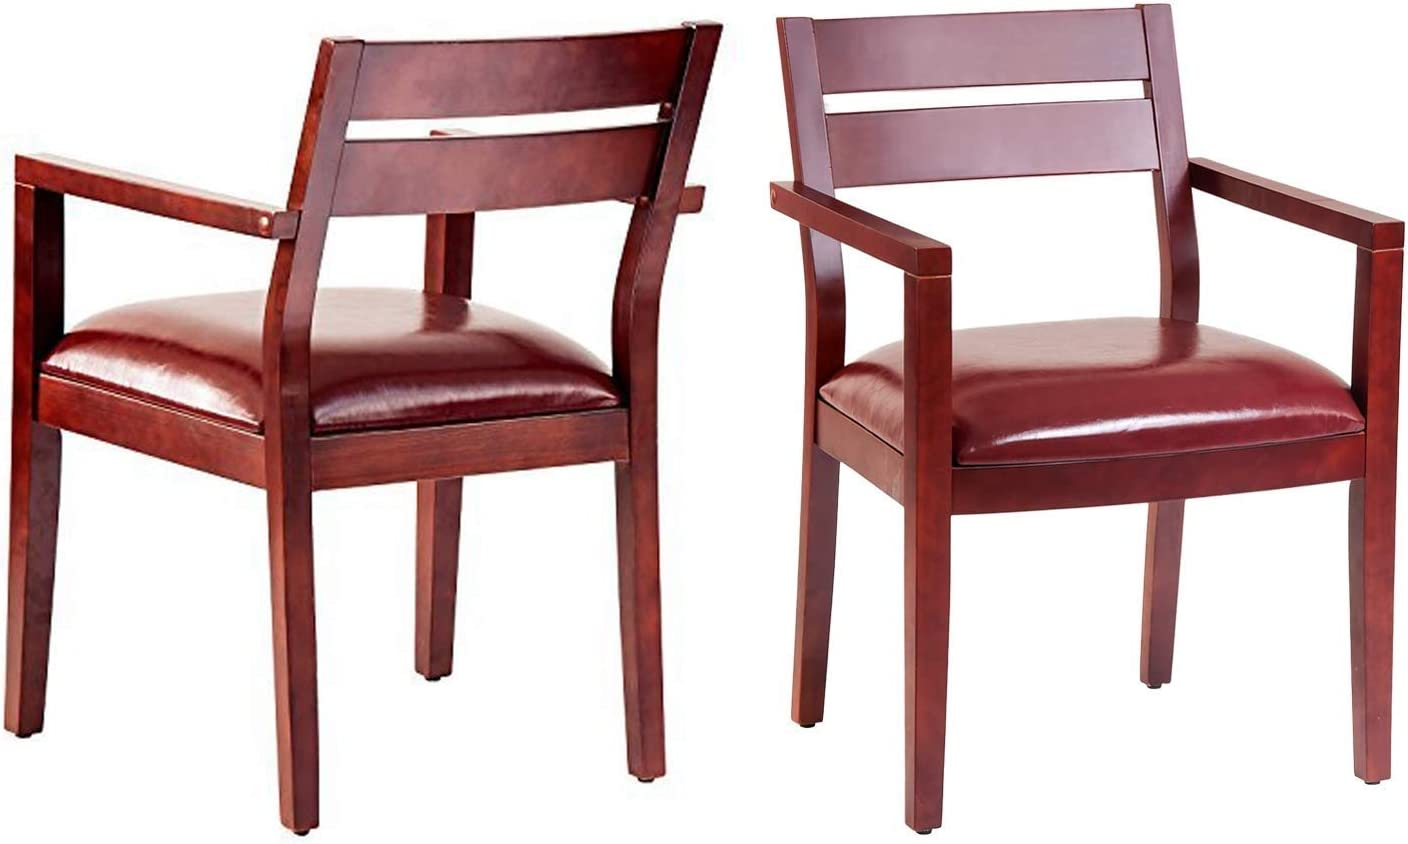 Merax Guest Chair Chair Set of 2 with Armrest, Reception Chairs for Conference Room Waiting Room with Solid Wood Frame